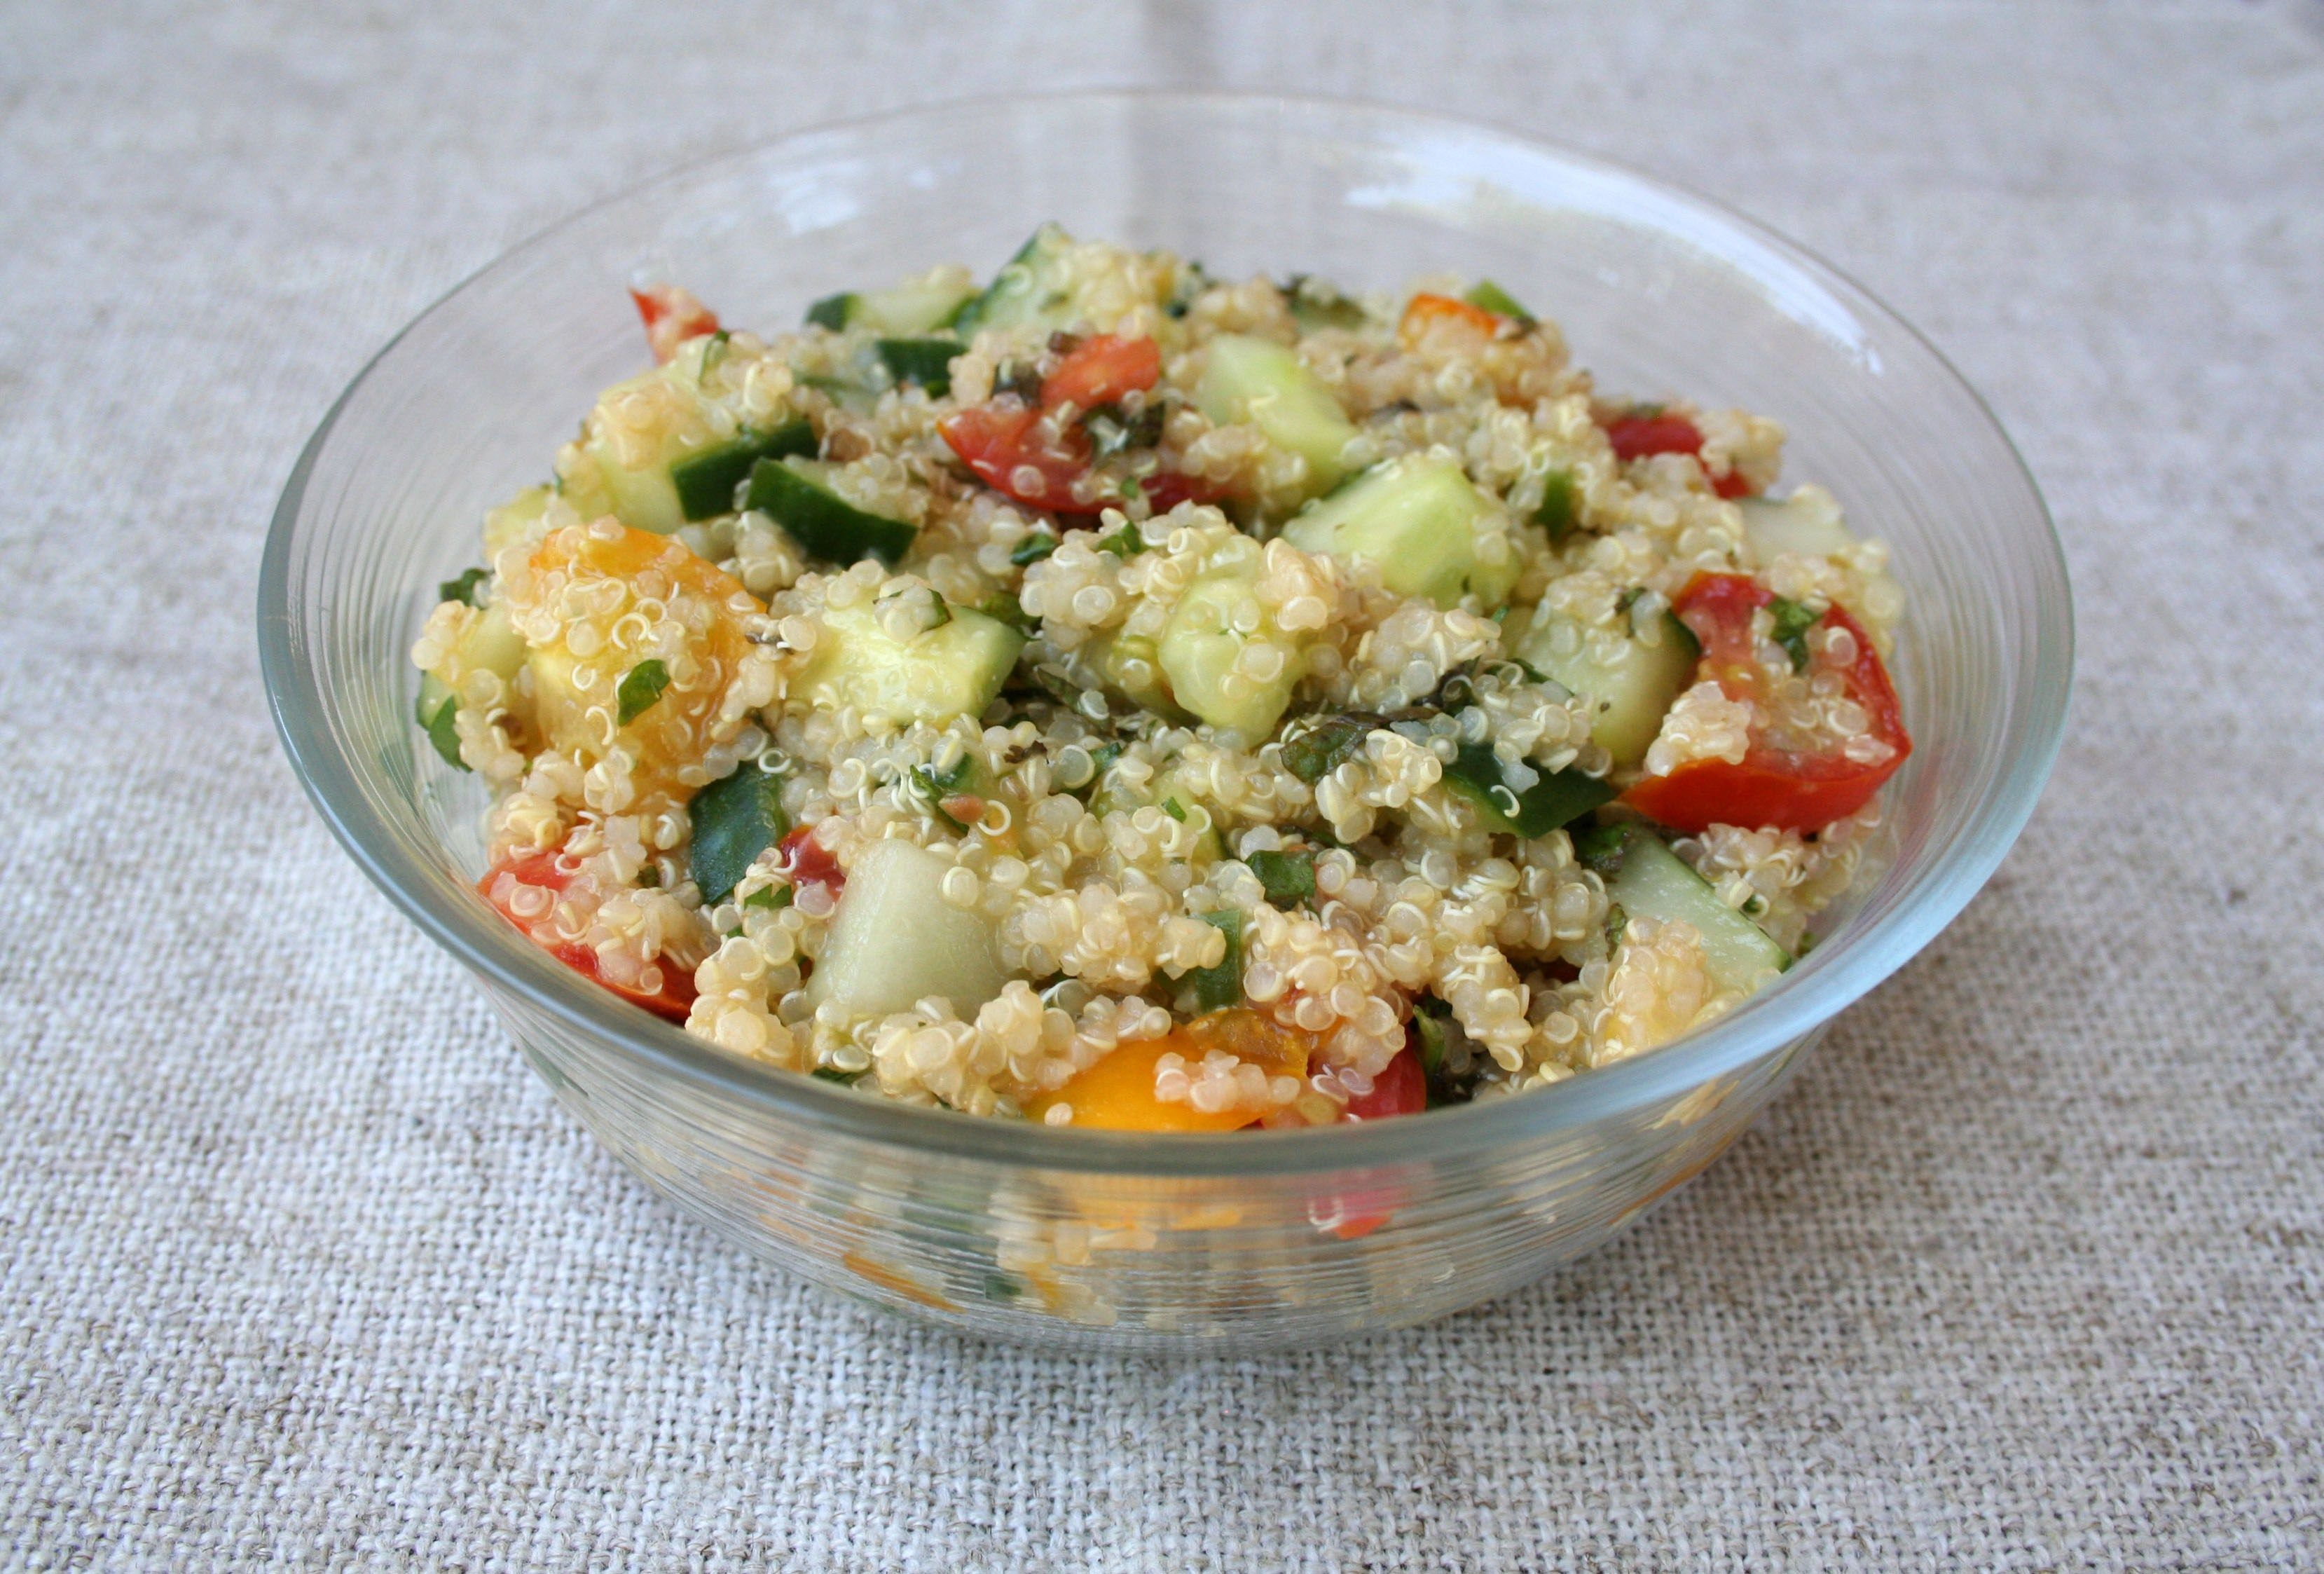 Quinoa Tabbouleh (vegan, gluten free) - This gluten free tabbouleh is perfect for people with a gluten intolerance. Packed with flavor and nutrition.